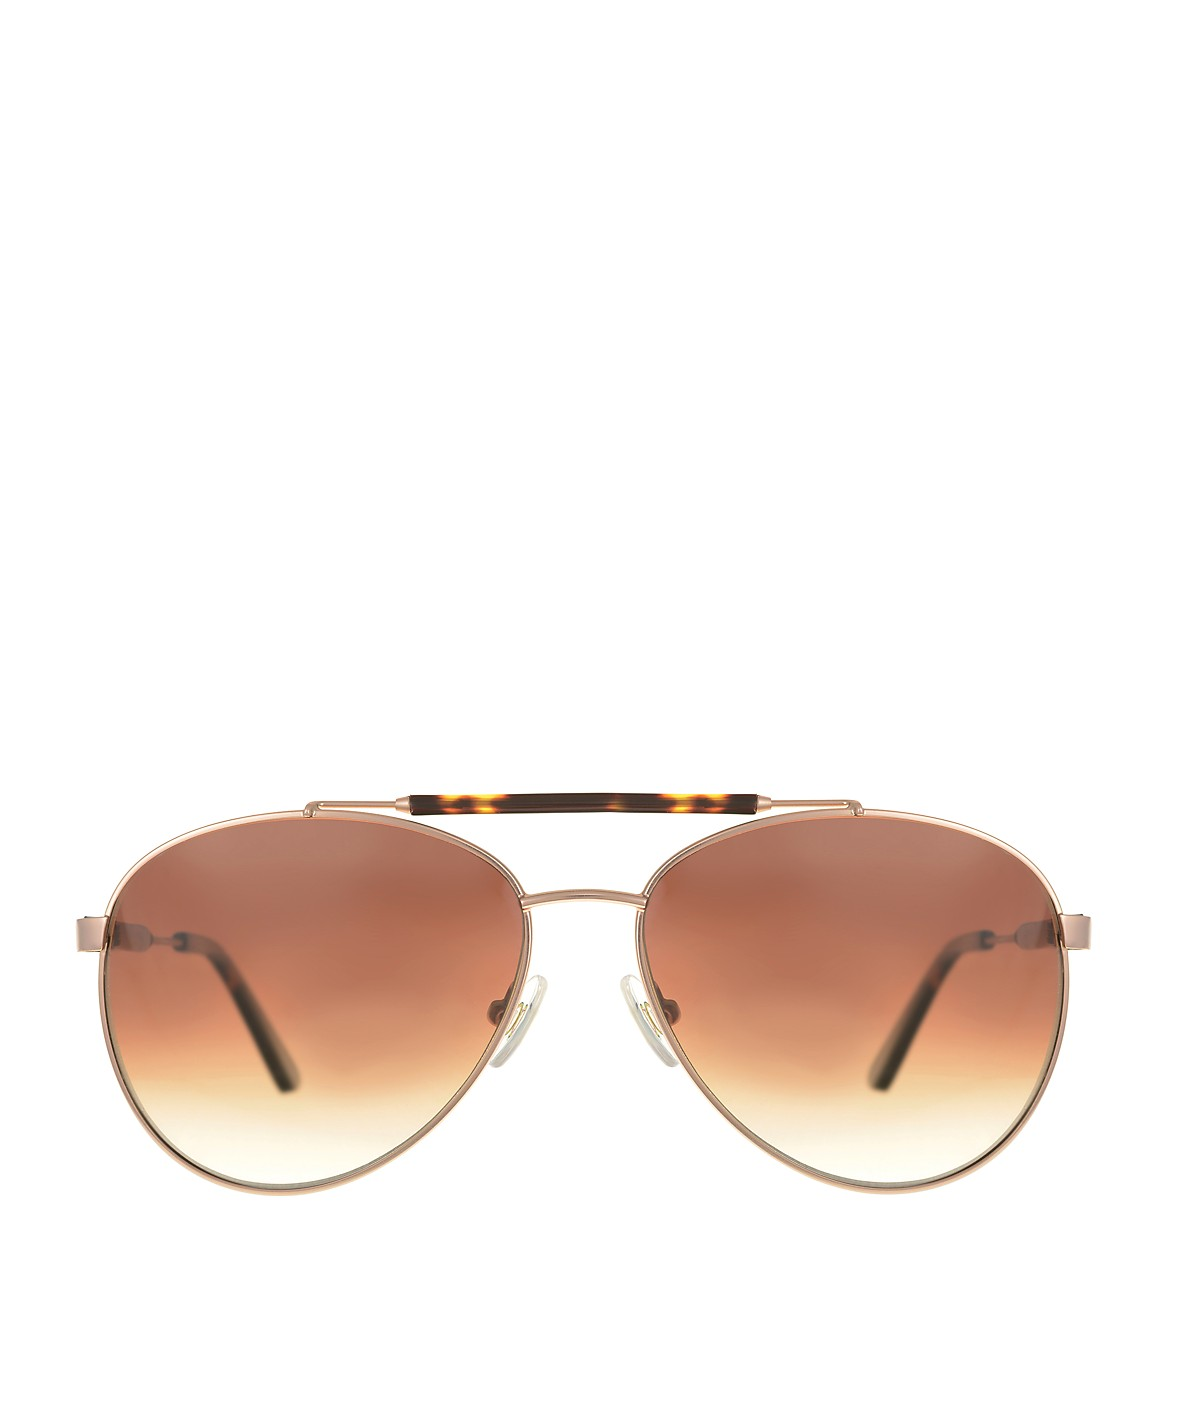 Aviator sunglasses 10589 from liebeskind